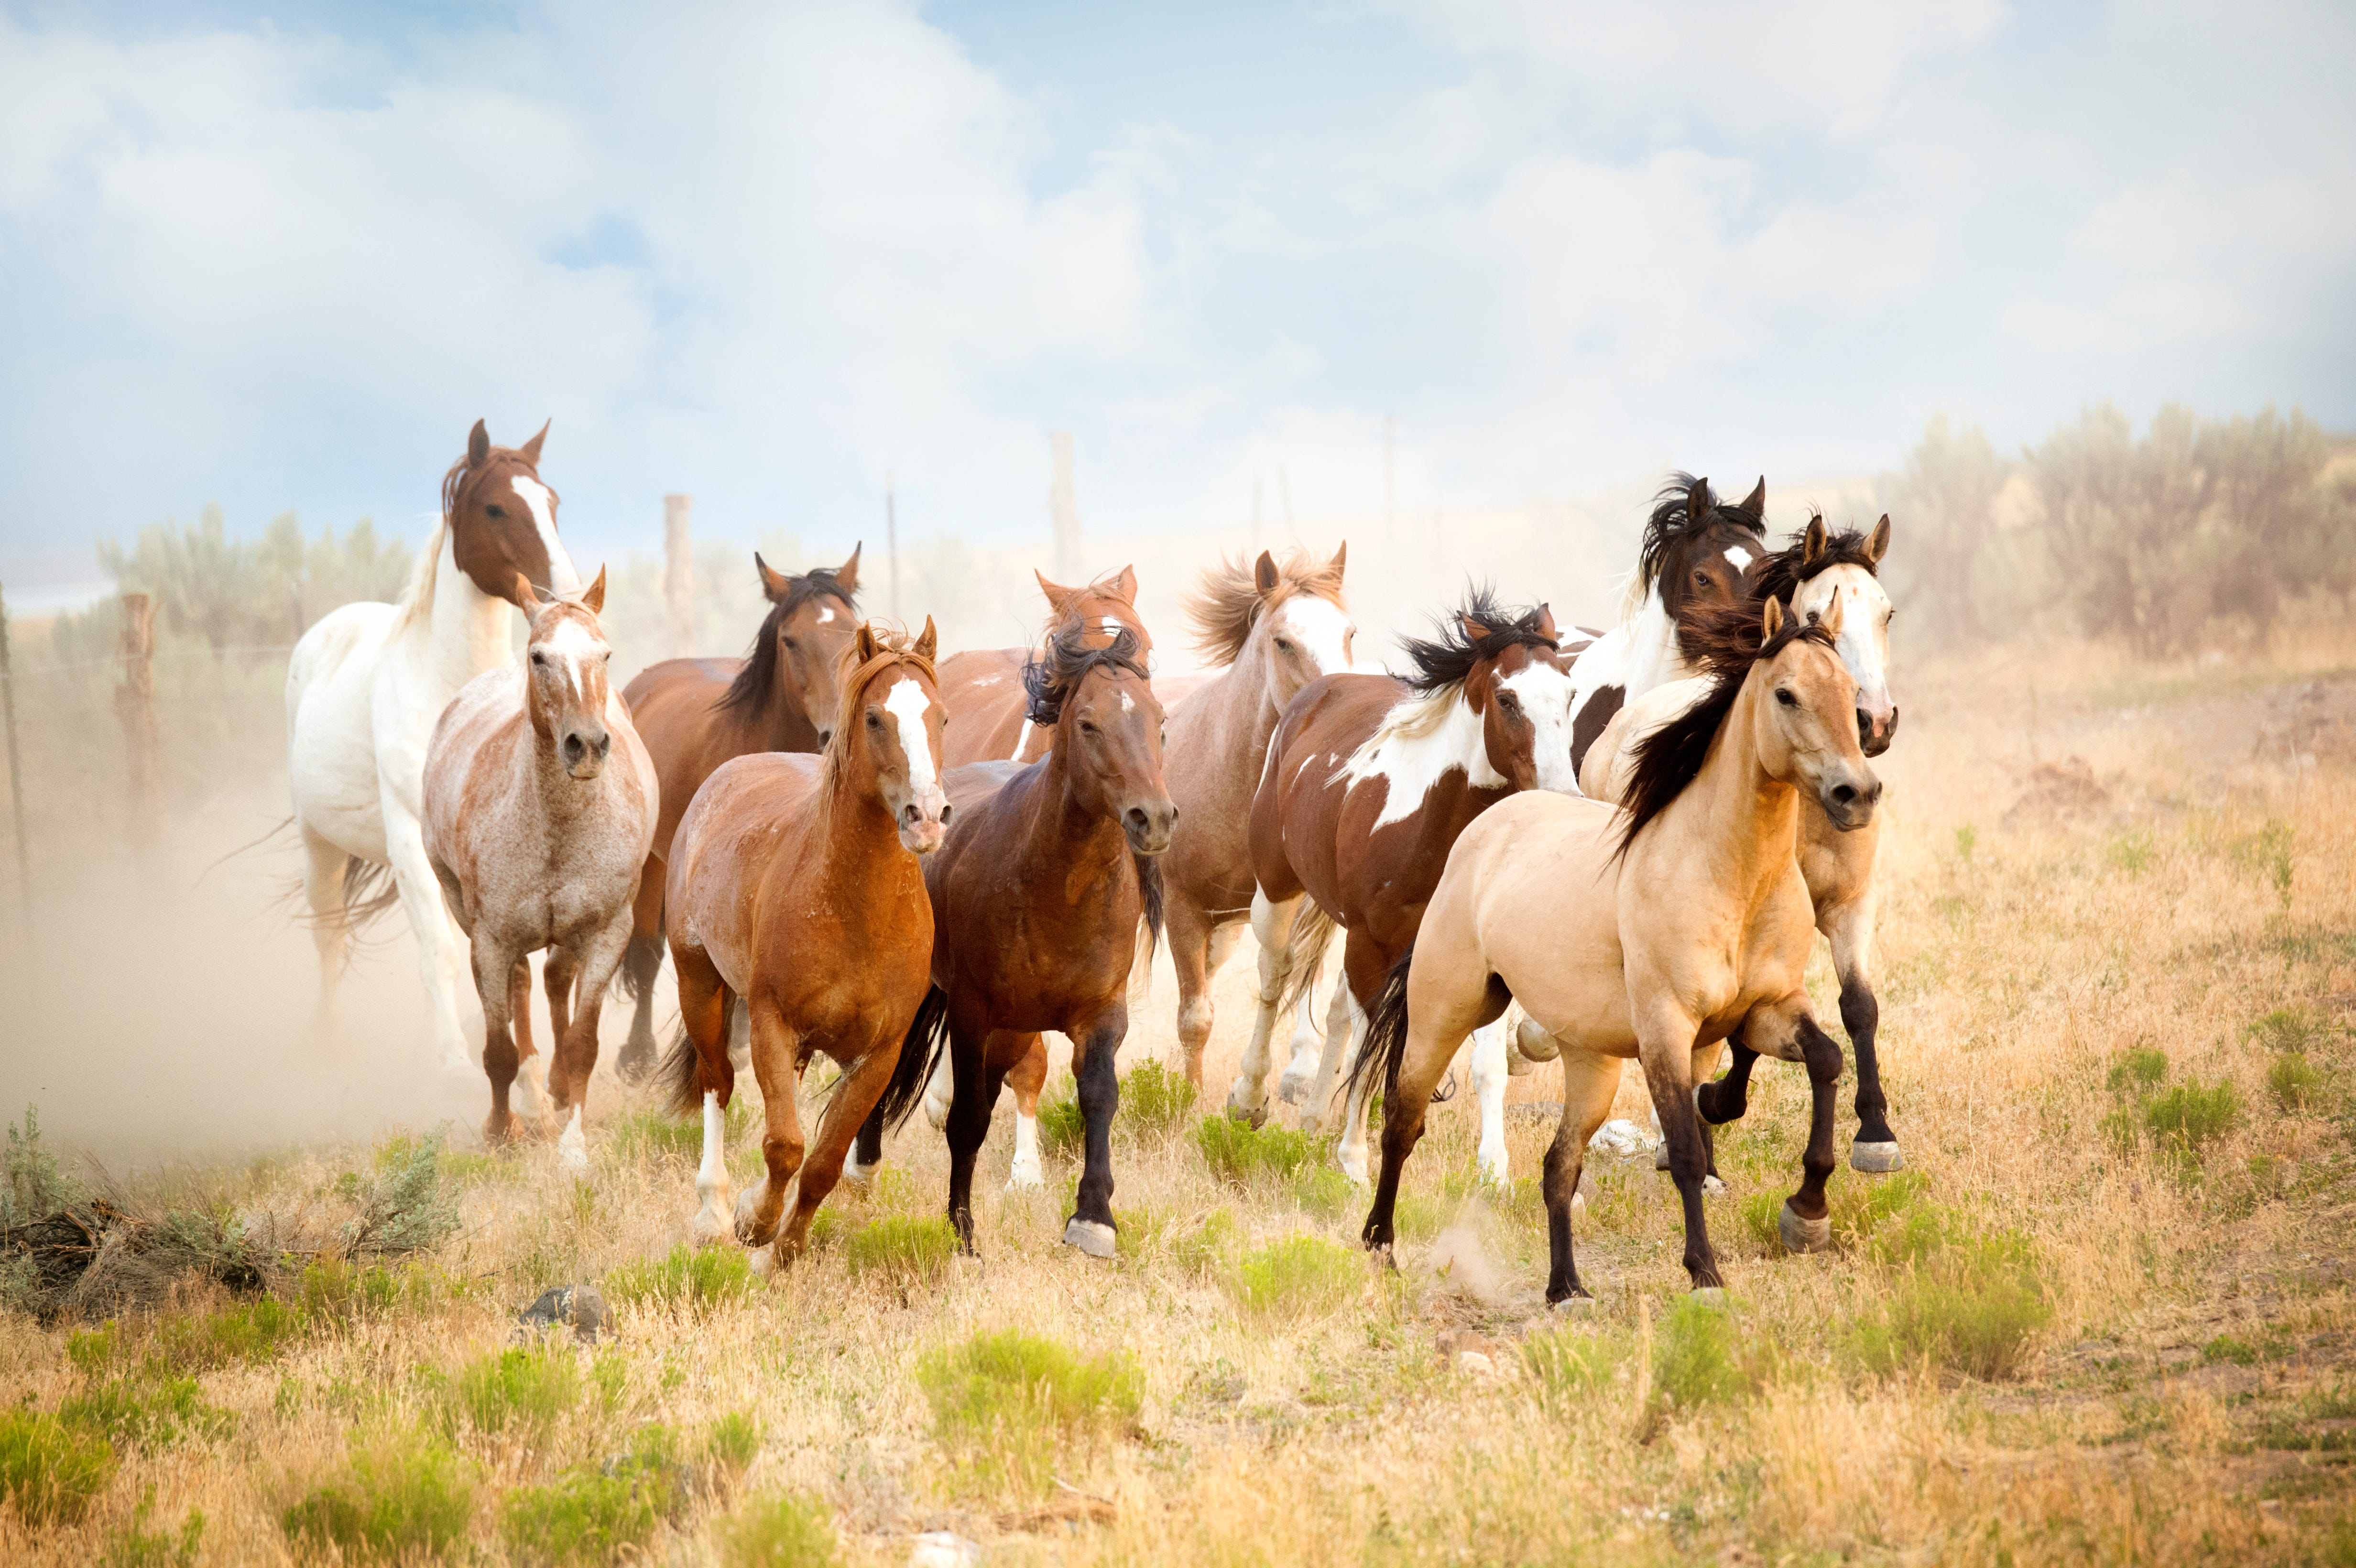 California Wild Horse Round Up Stirs Slaughterhouse Fears